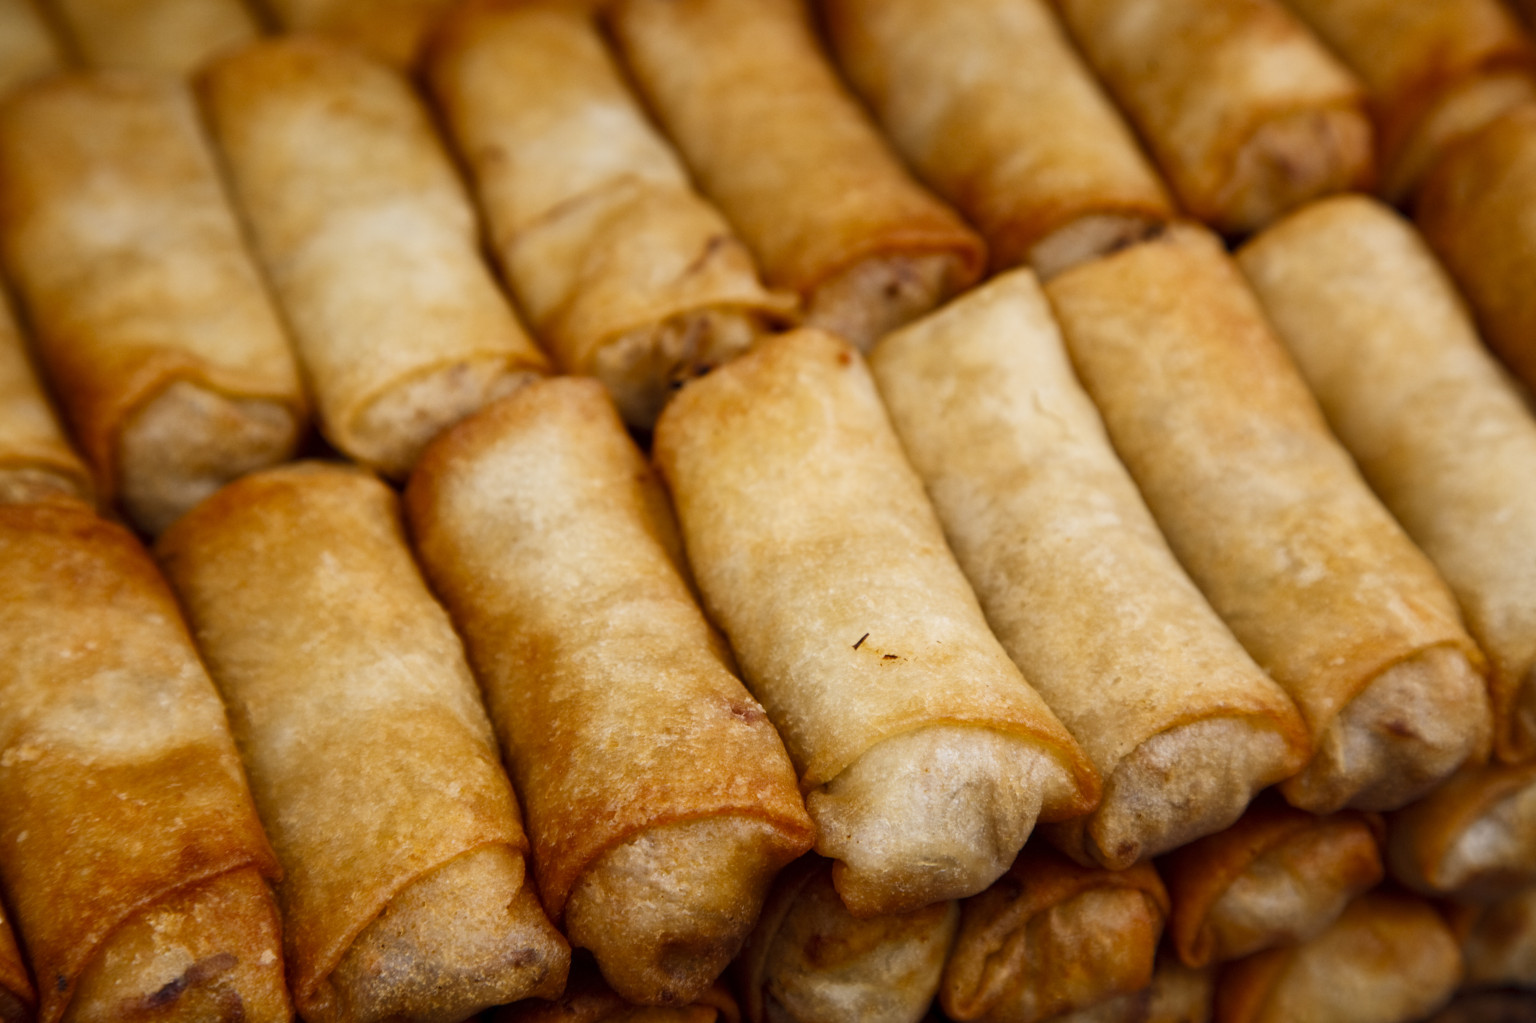 ... Officer Charged With Taking Egg Rolls As Bribes | The Huffington Post